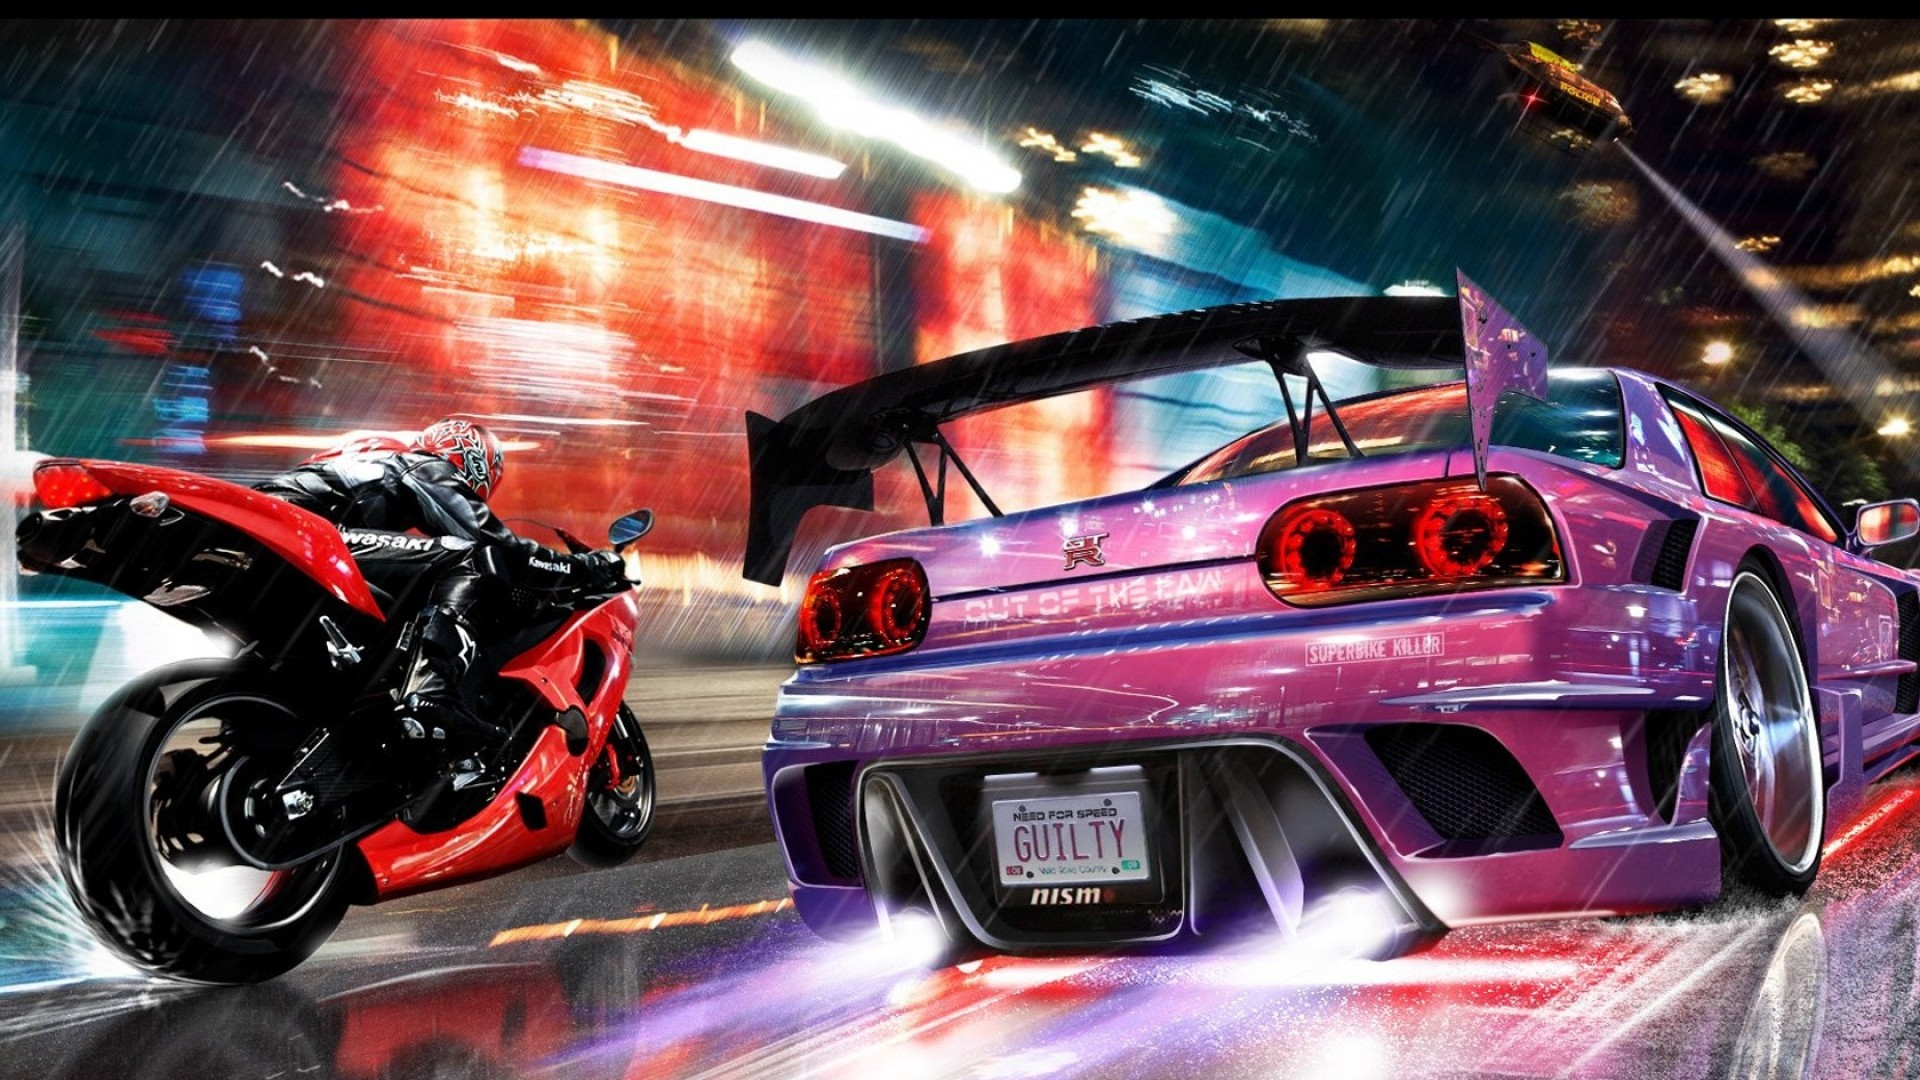 1920x1080 nfs, need for speed, motorcycle